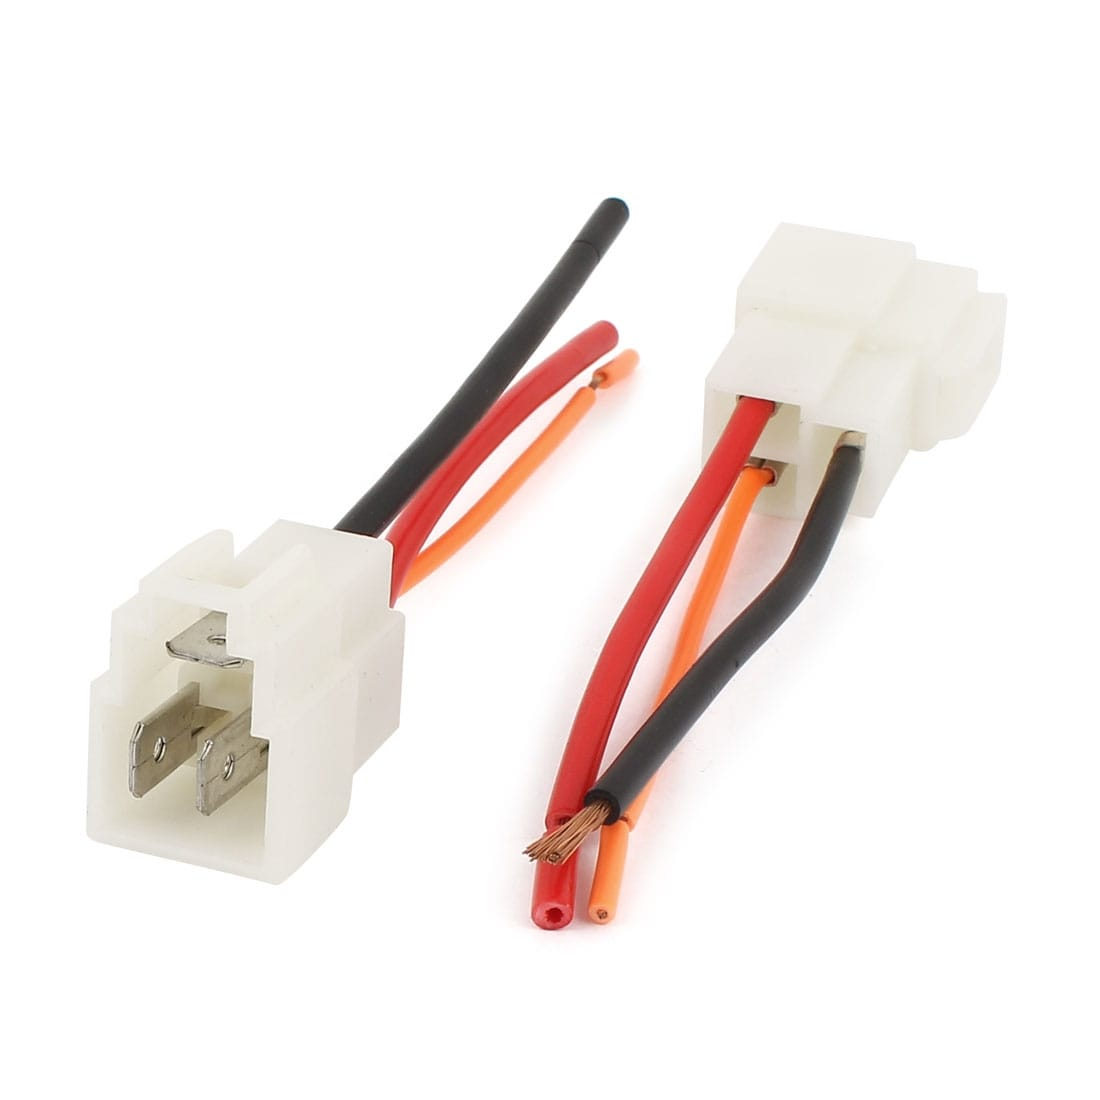 hight resolution of shop unique bargains motorcycle 3 way cable wire wiring harness female adapter connector 2pcs on sale free shipping on orders over 45 overstock